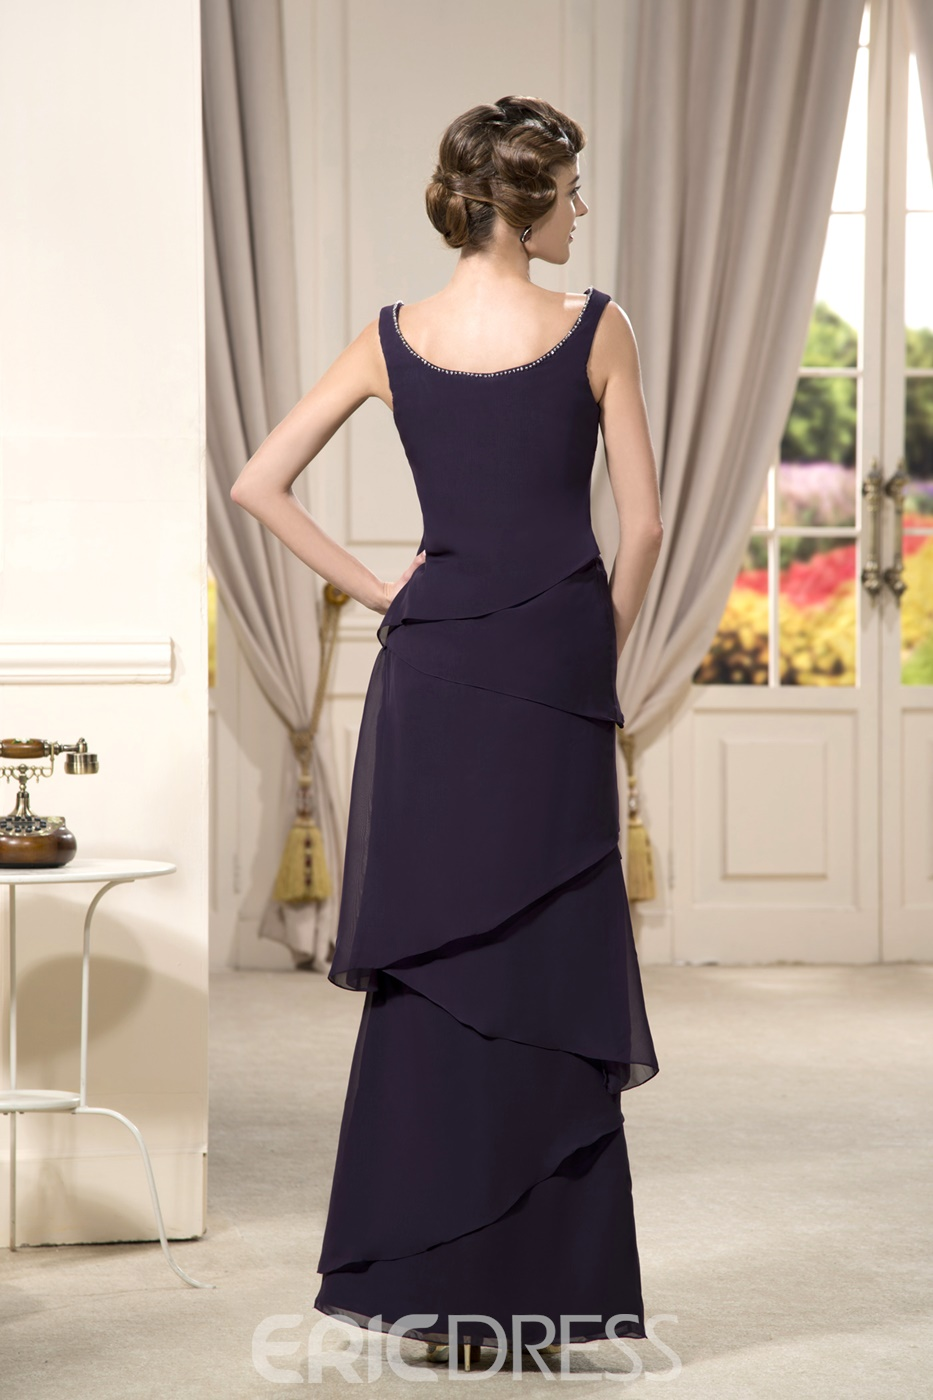 Charming A-line Floor-length Beaded Square Neckline Strapless Evening Dress